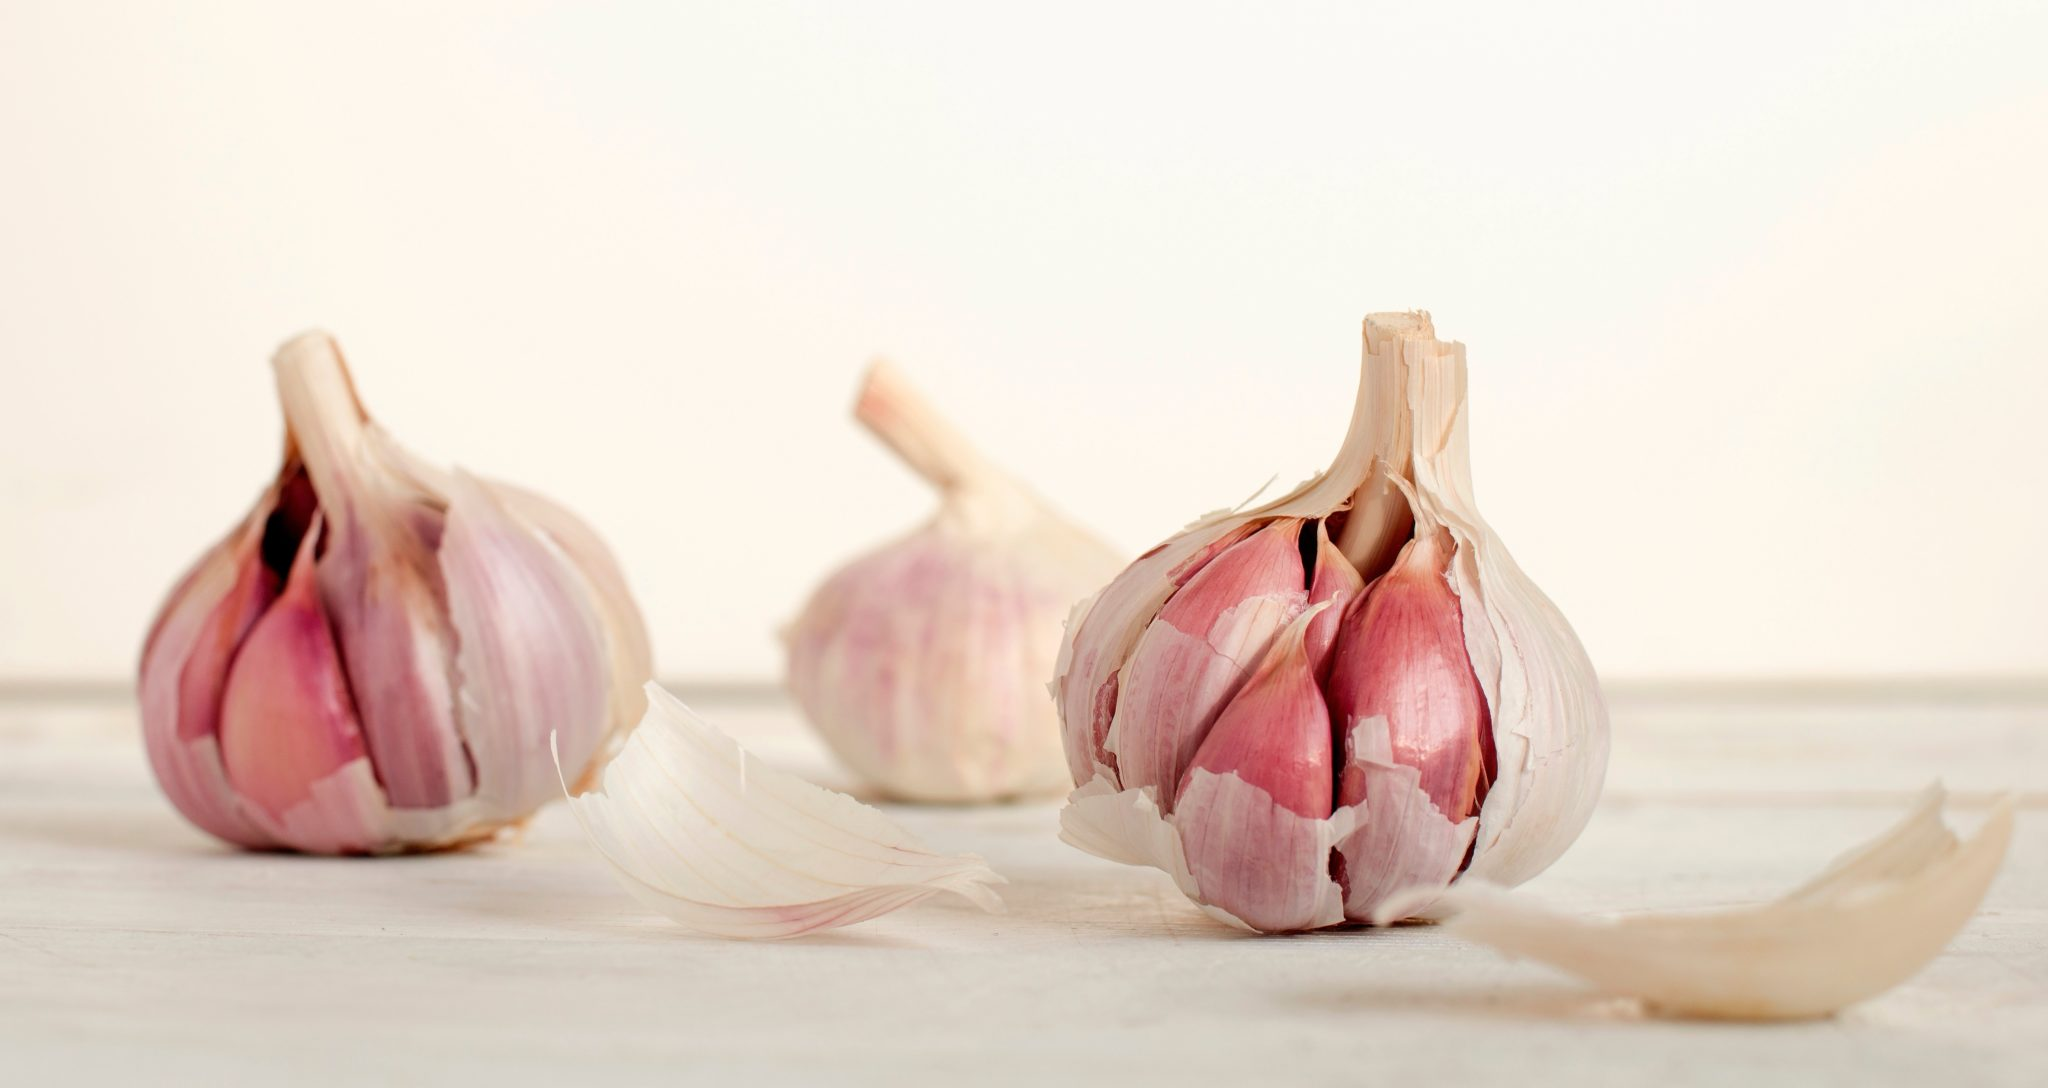 Breaking up with Garlic